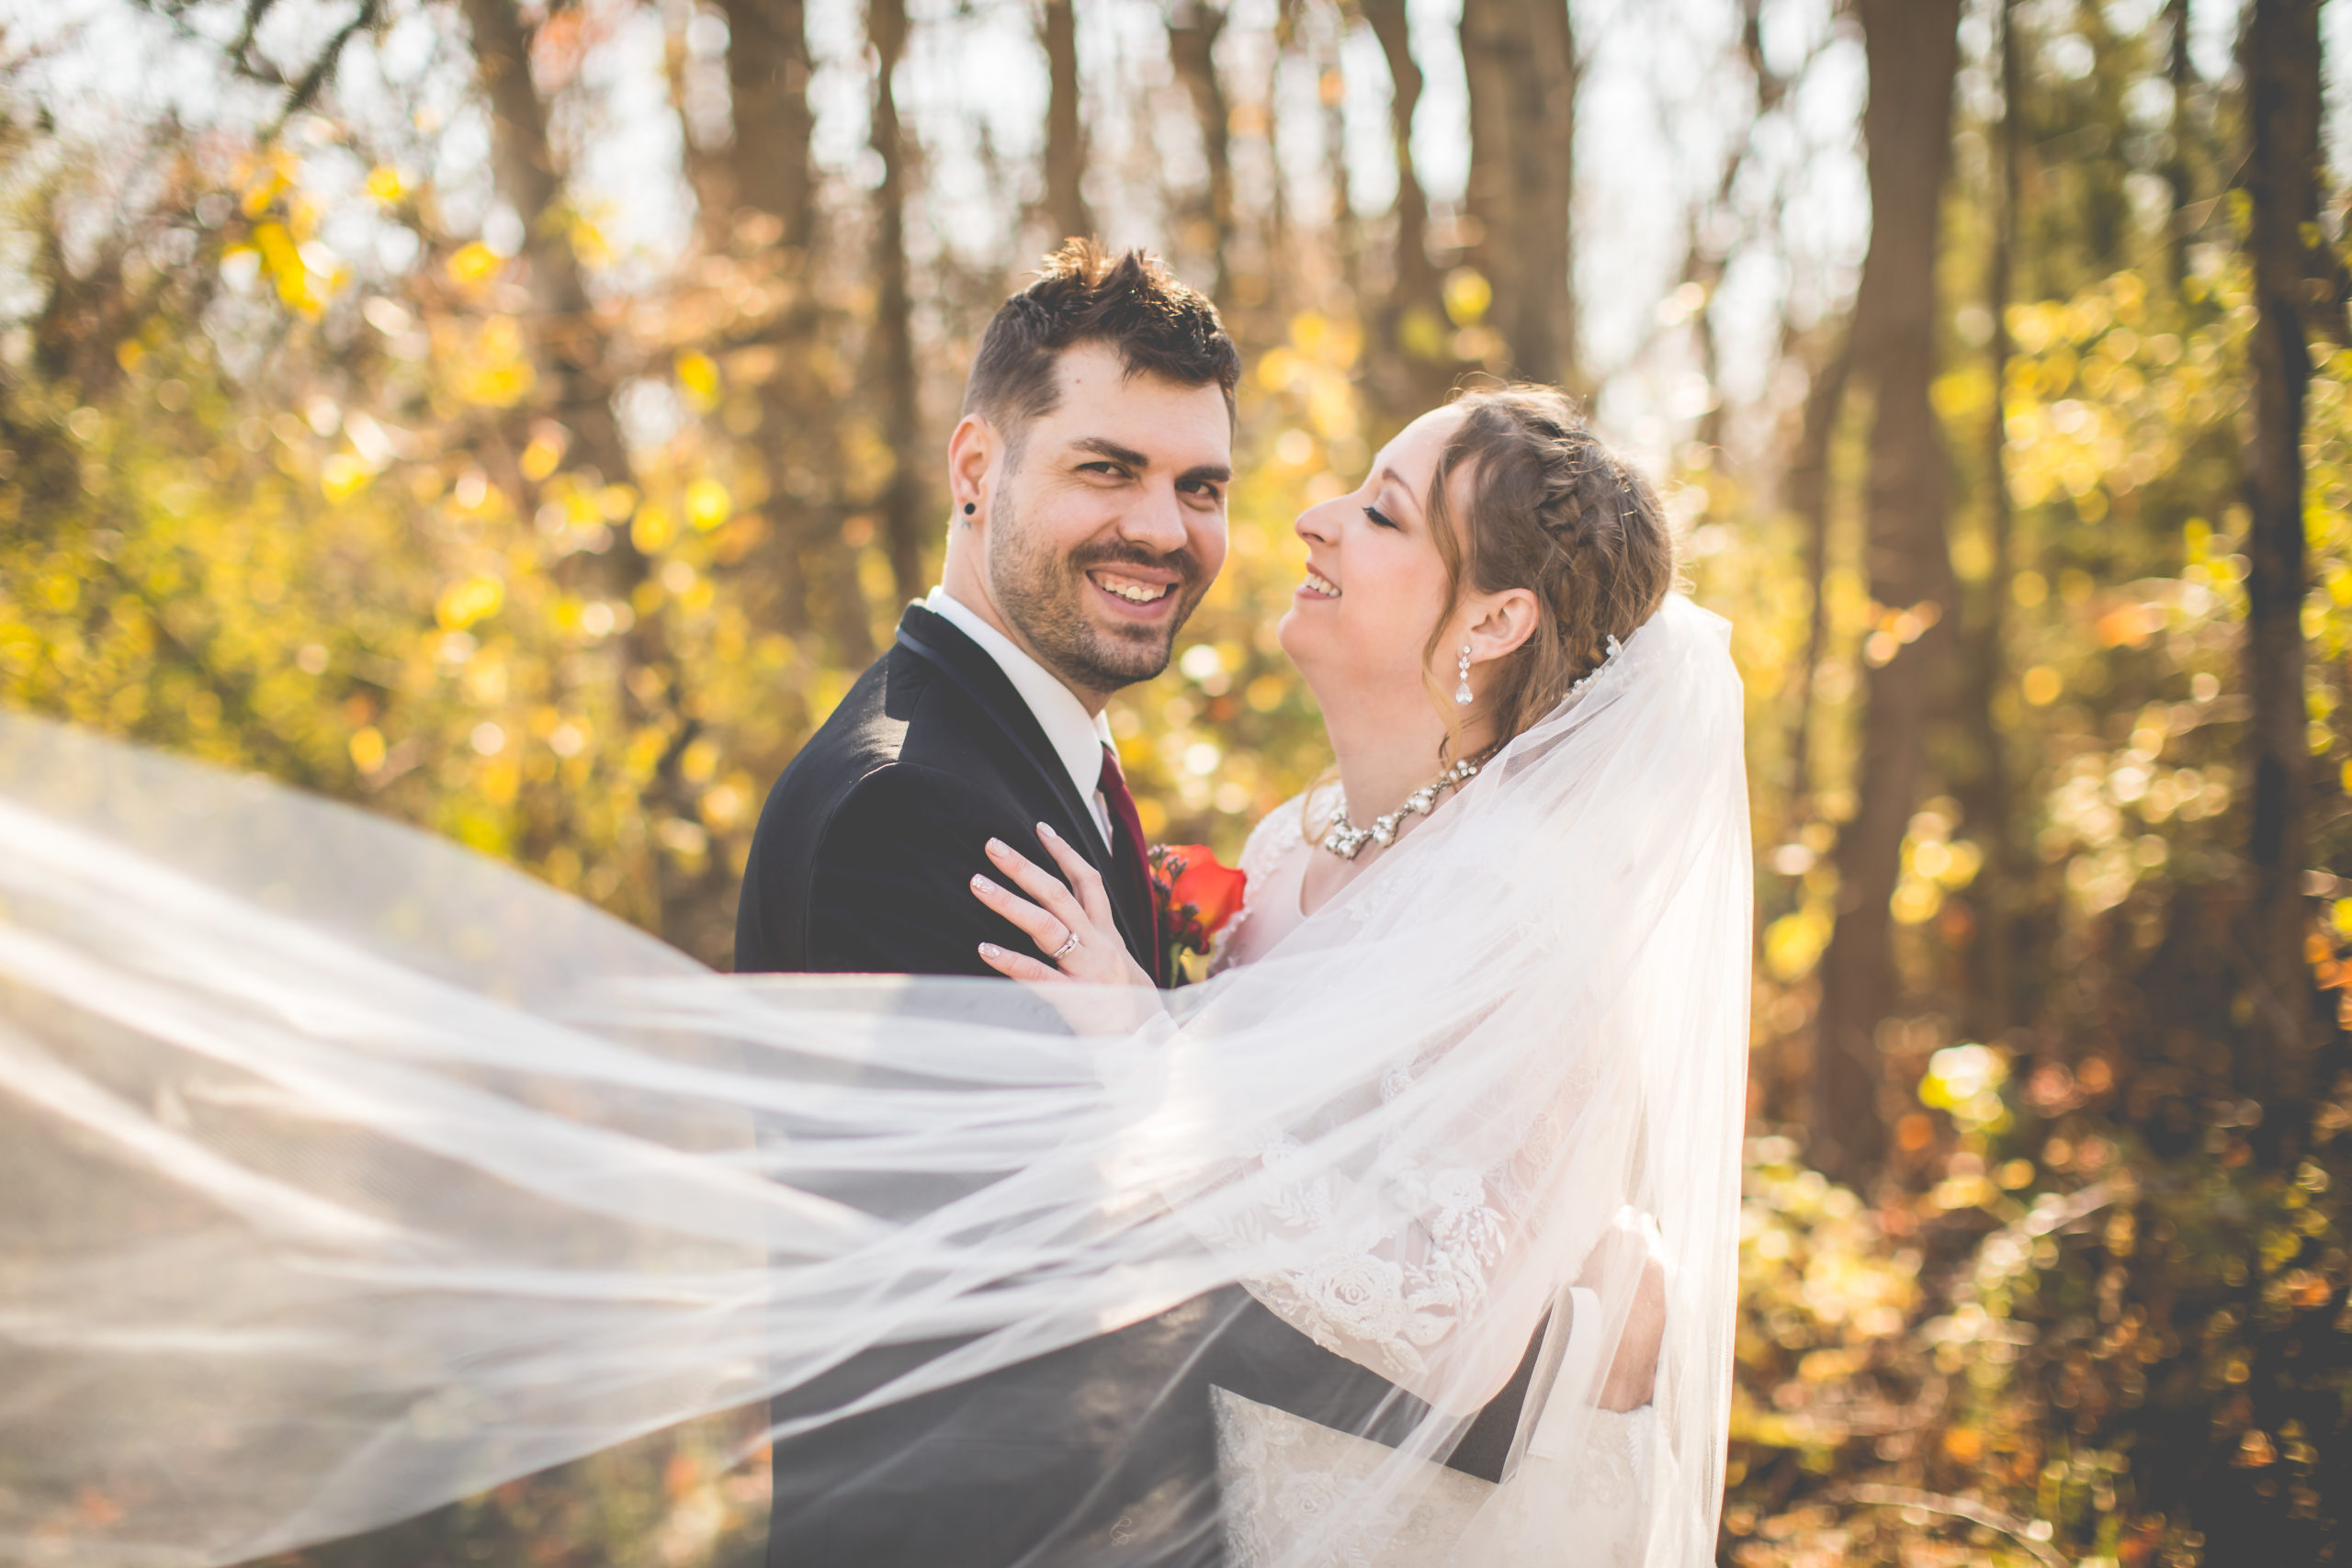 Couple Embrace at Outdoor Elopement in Michigan